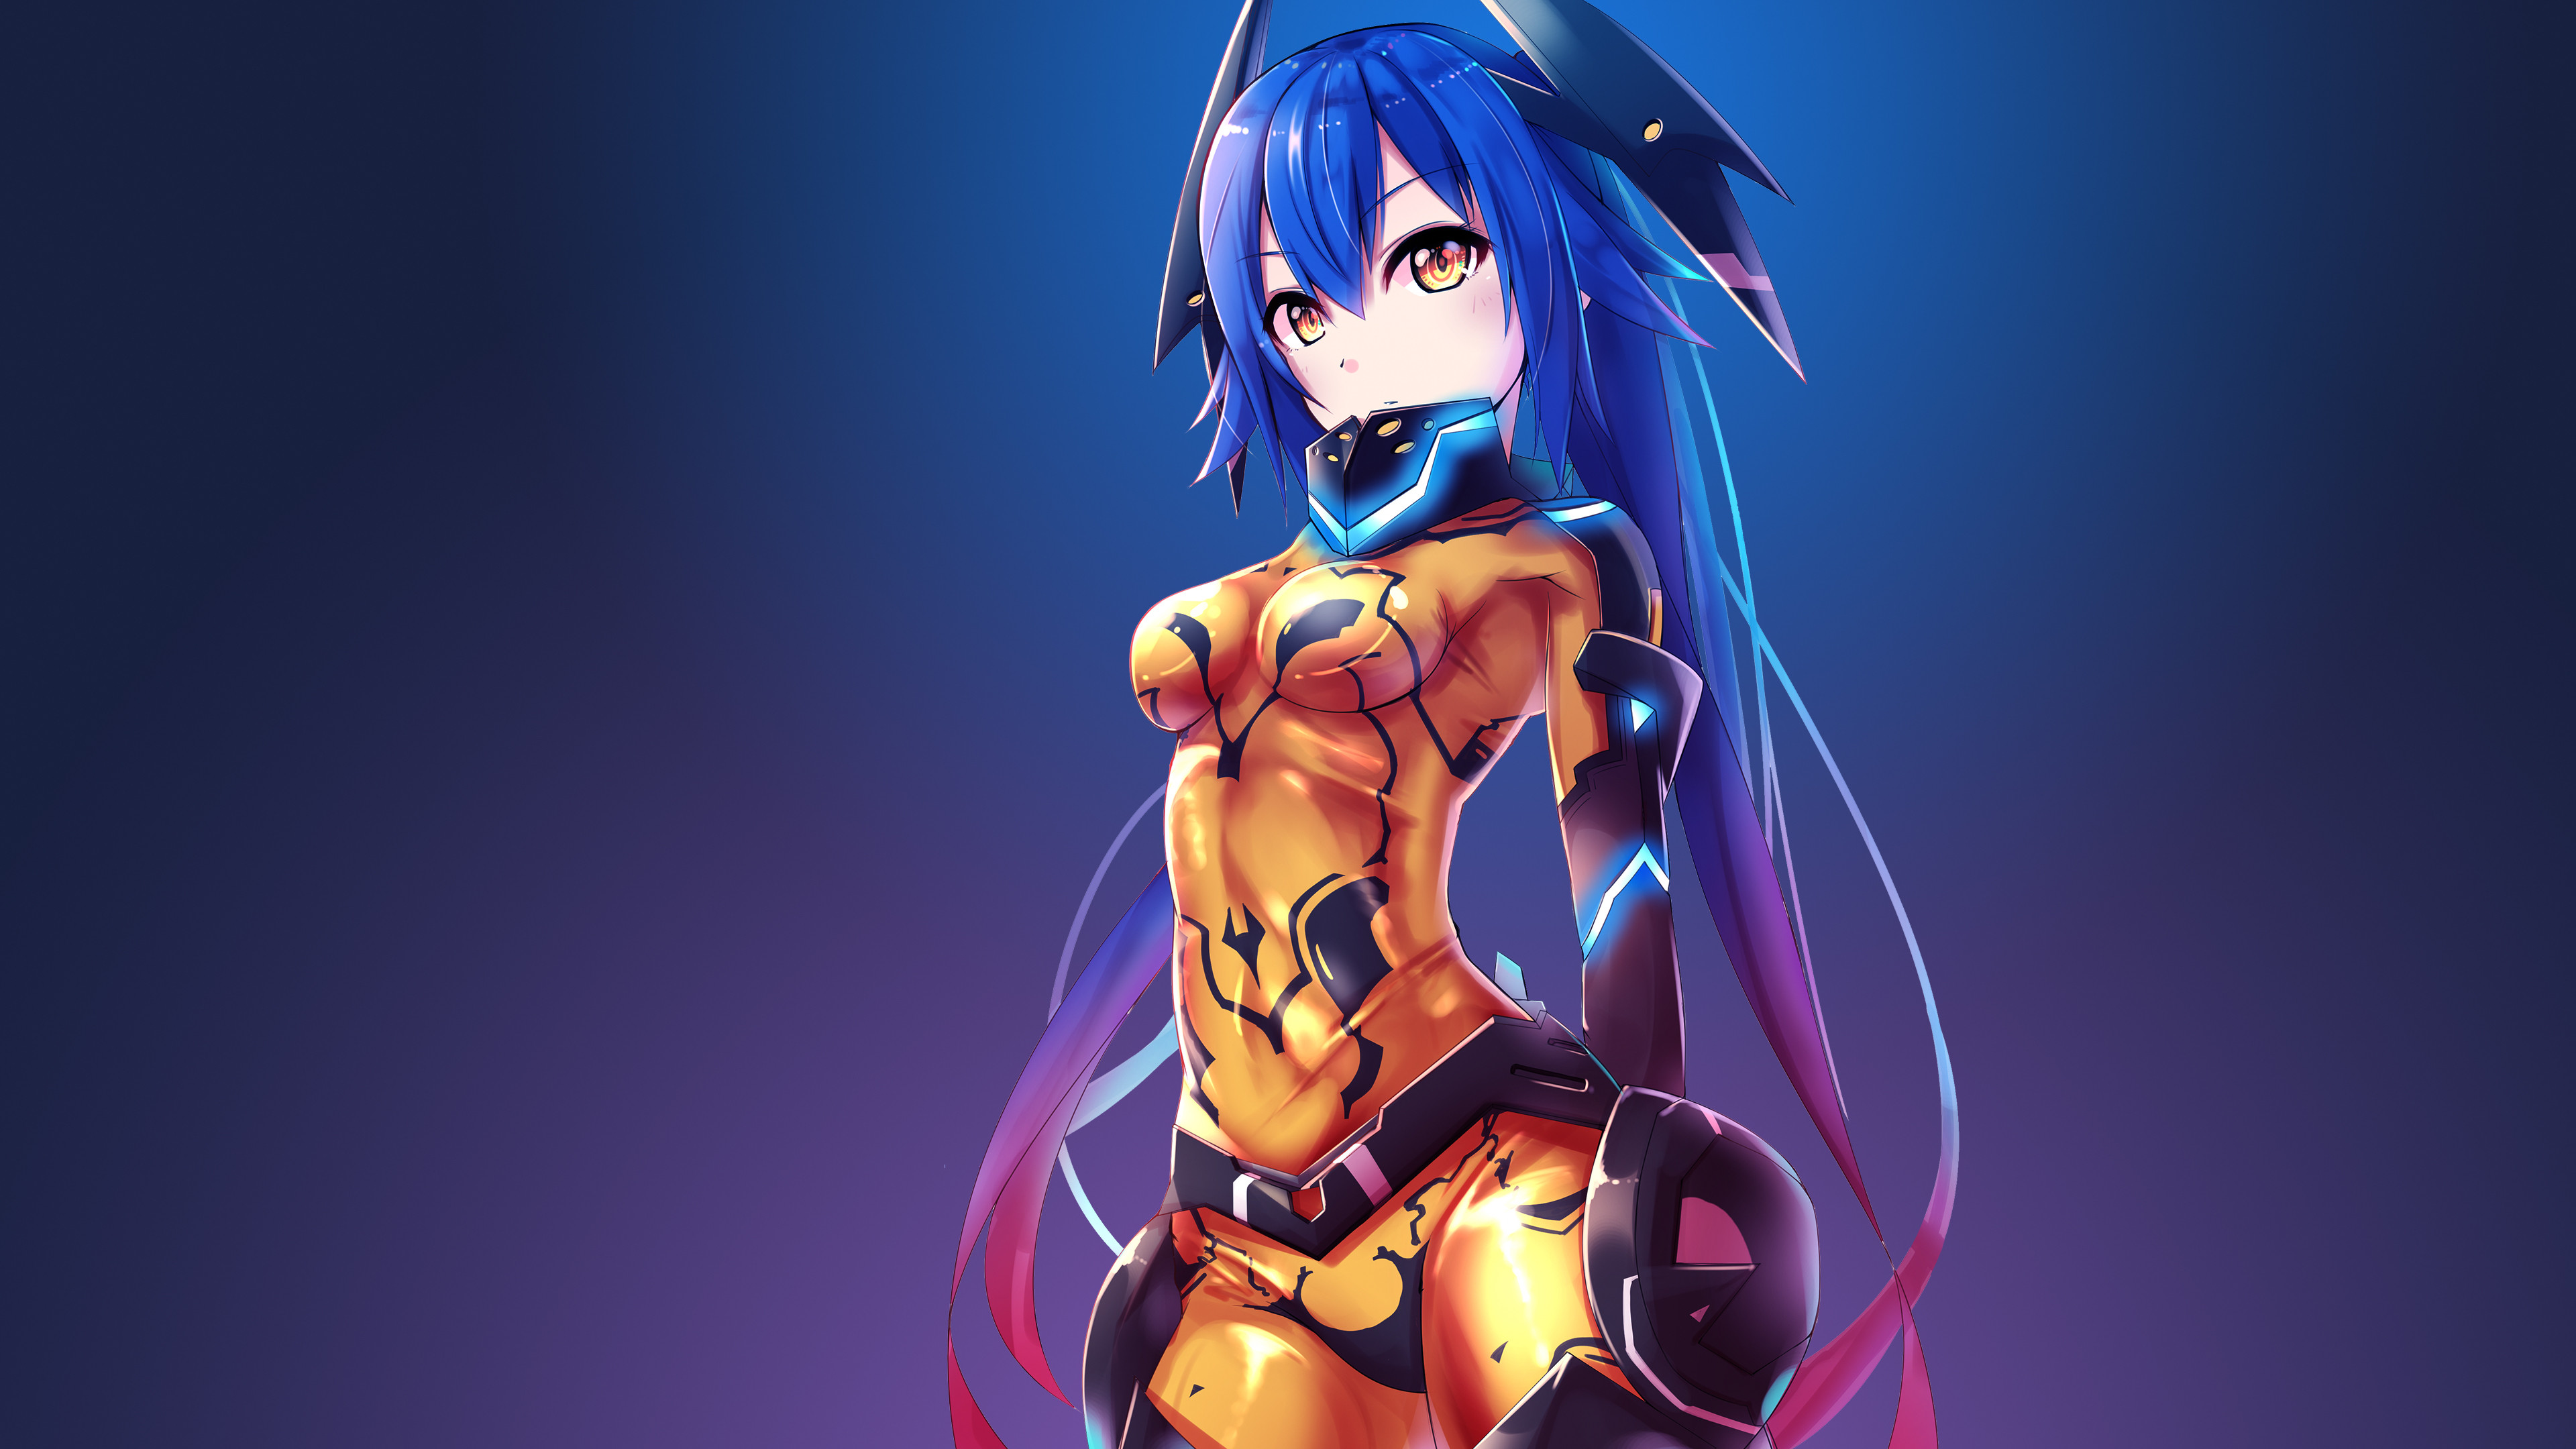 4k Anime Wallpapers 59 Images